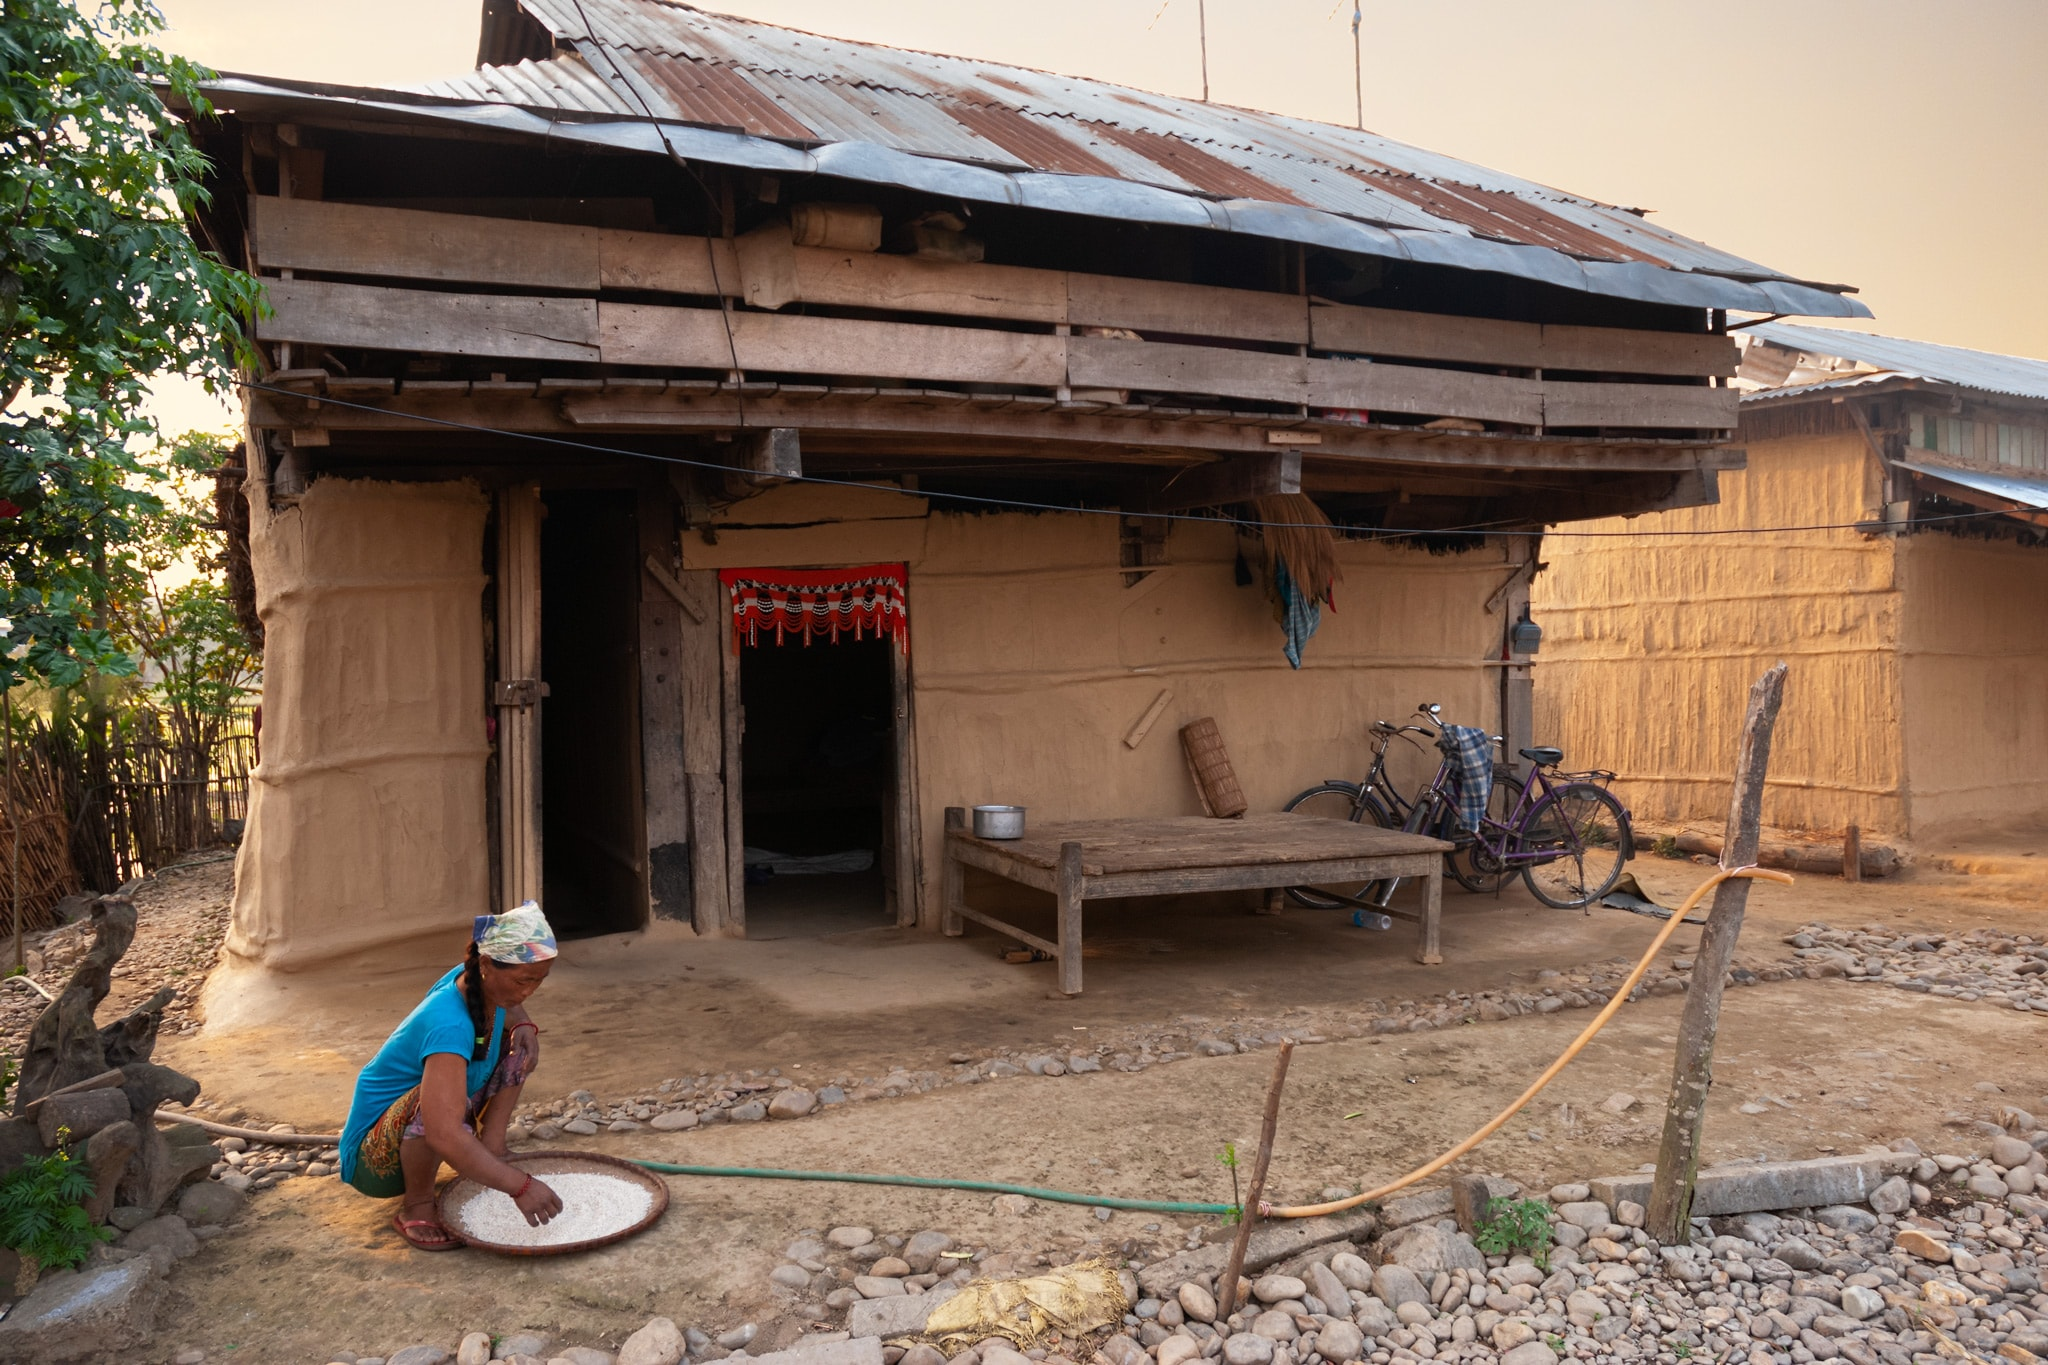 Tharu woman cleans rice in front of her traditional Tharu house made of straw and clay. Chitwan, Nepal.